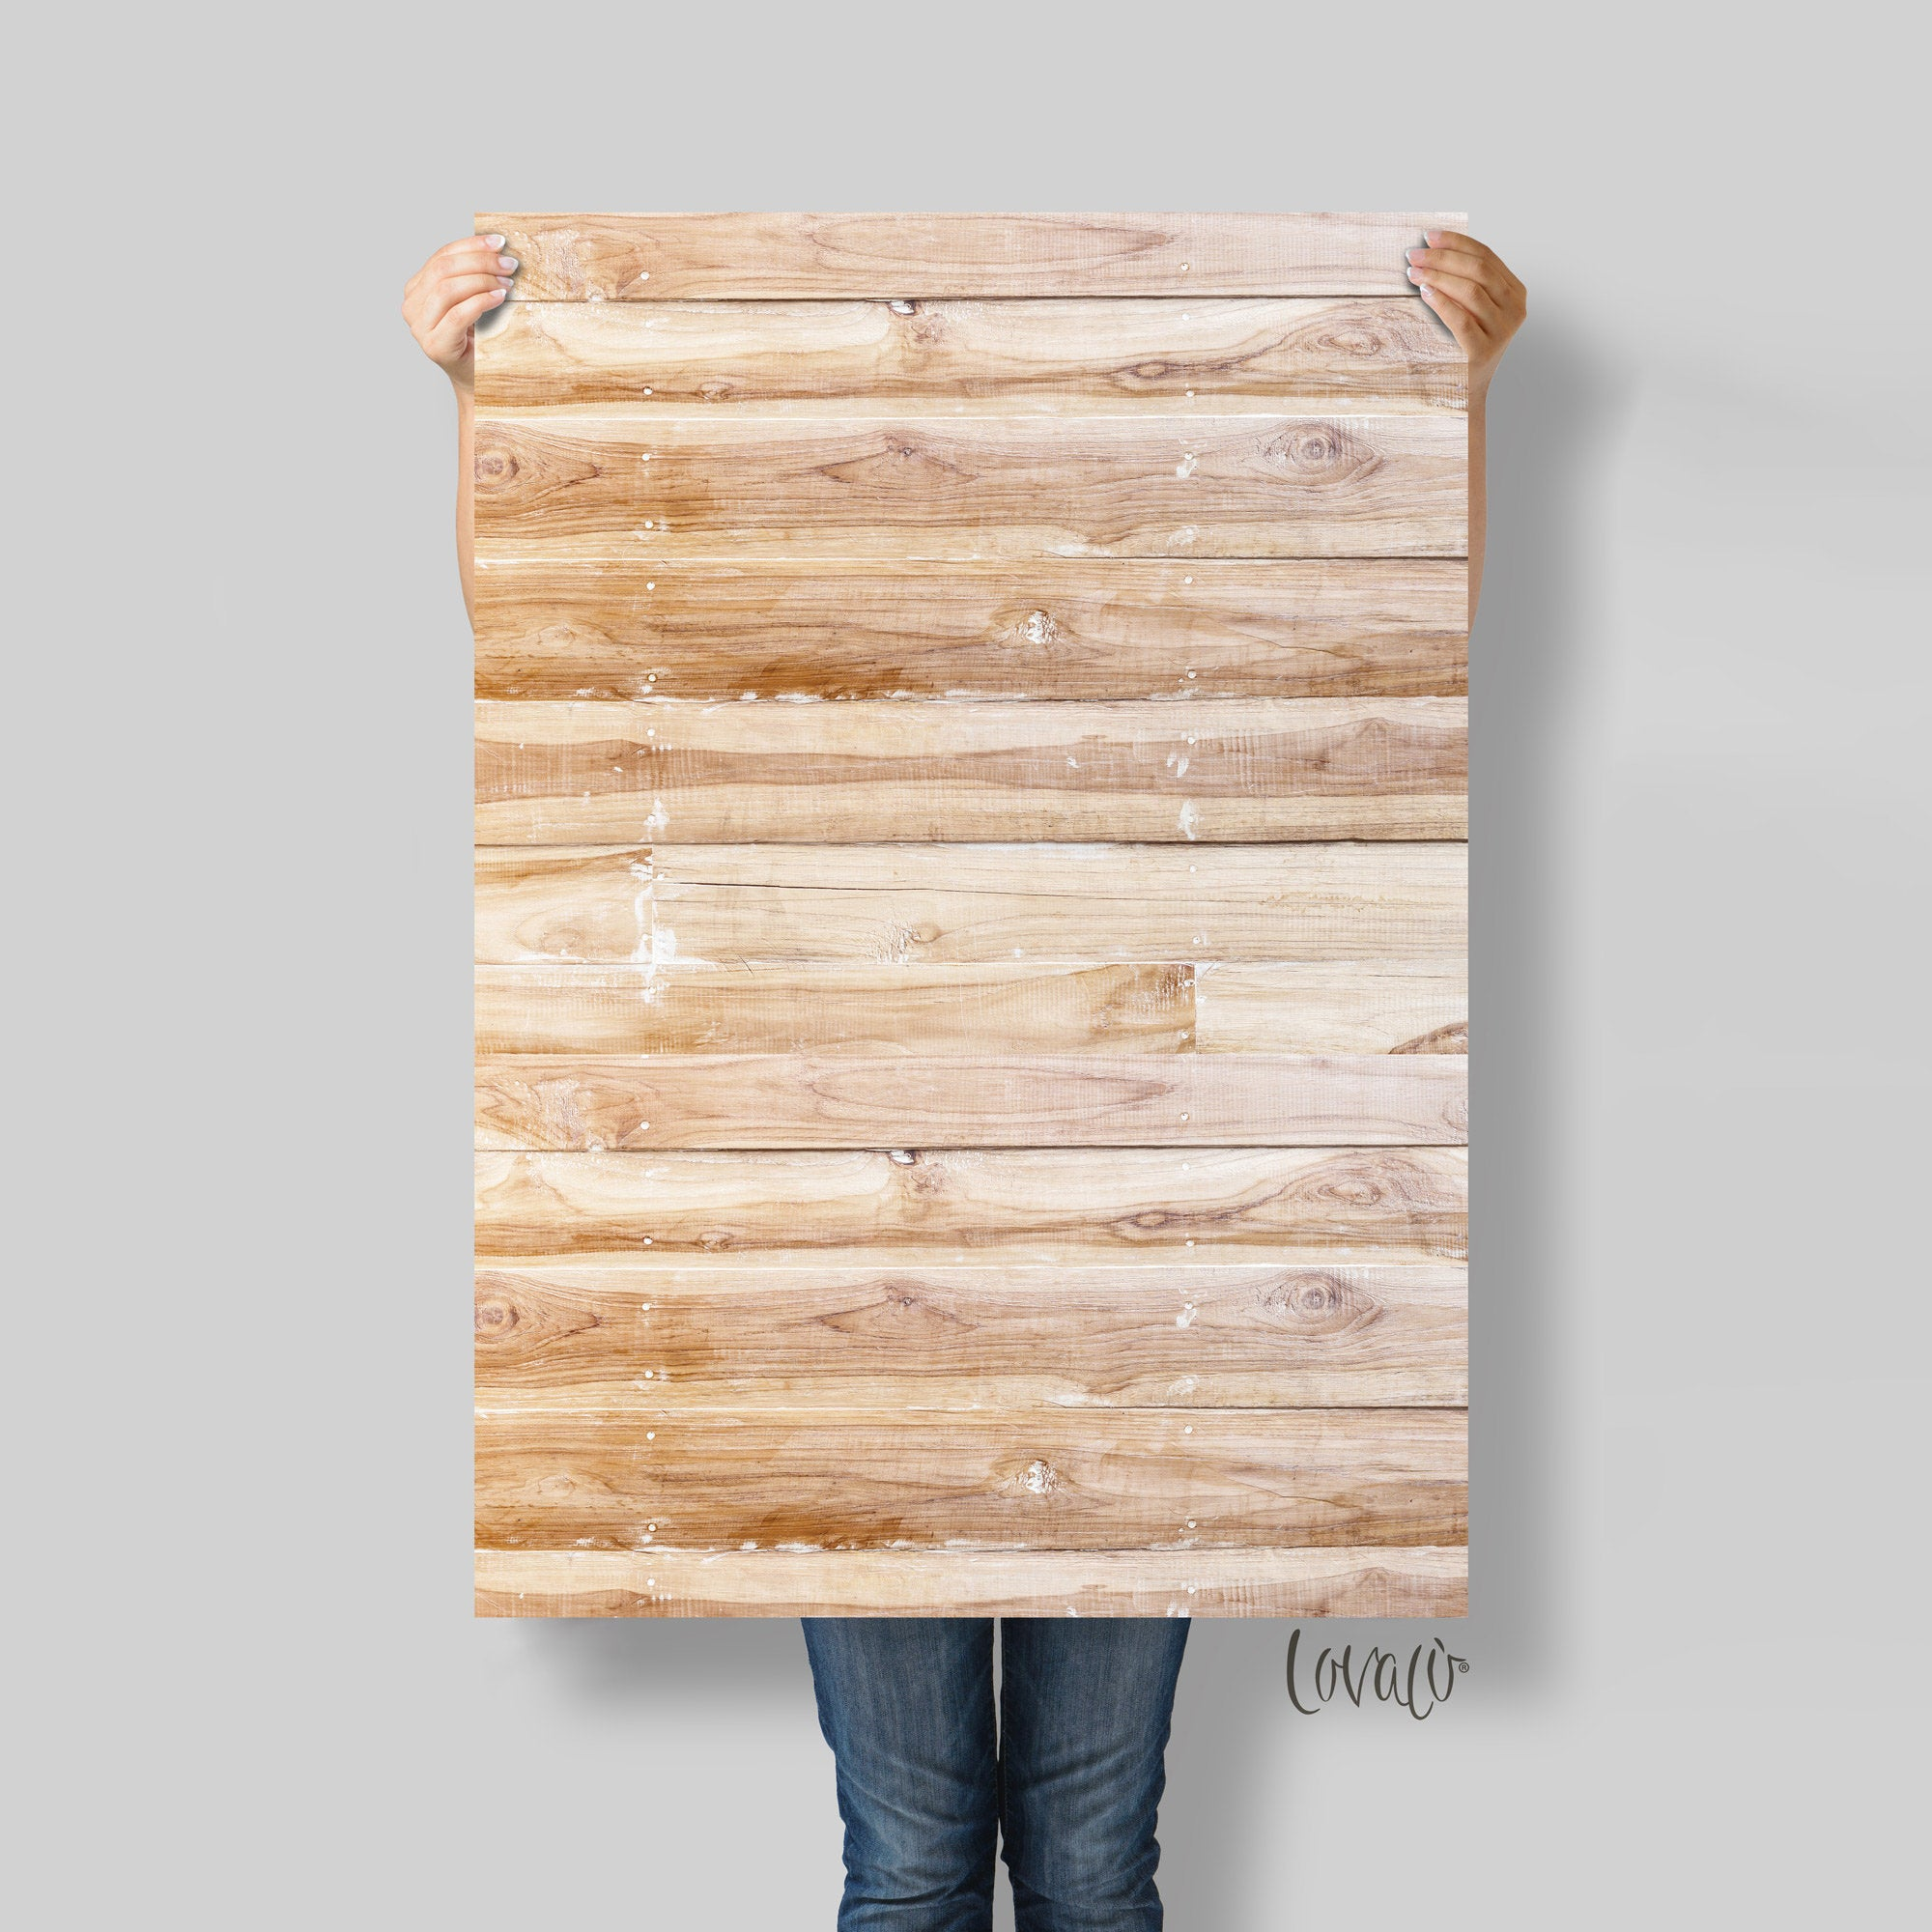 Photo Backdrop natural wood for Product, Instagram, Flat lay & Food Photography - Lov2007